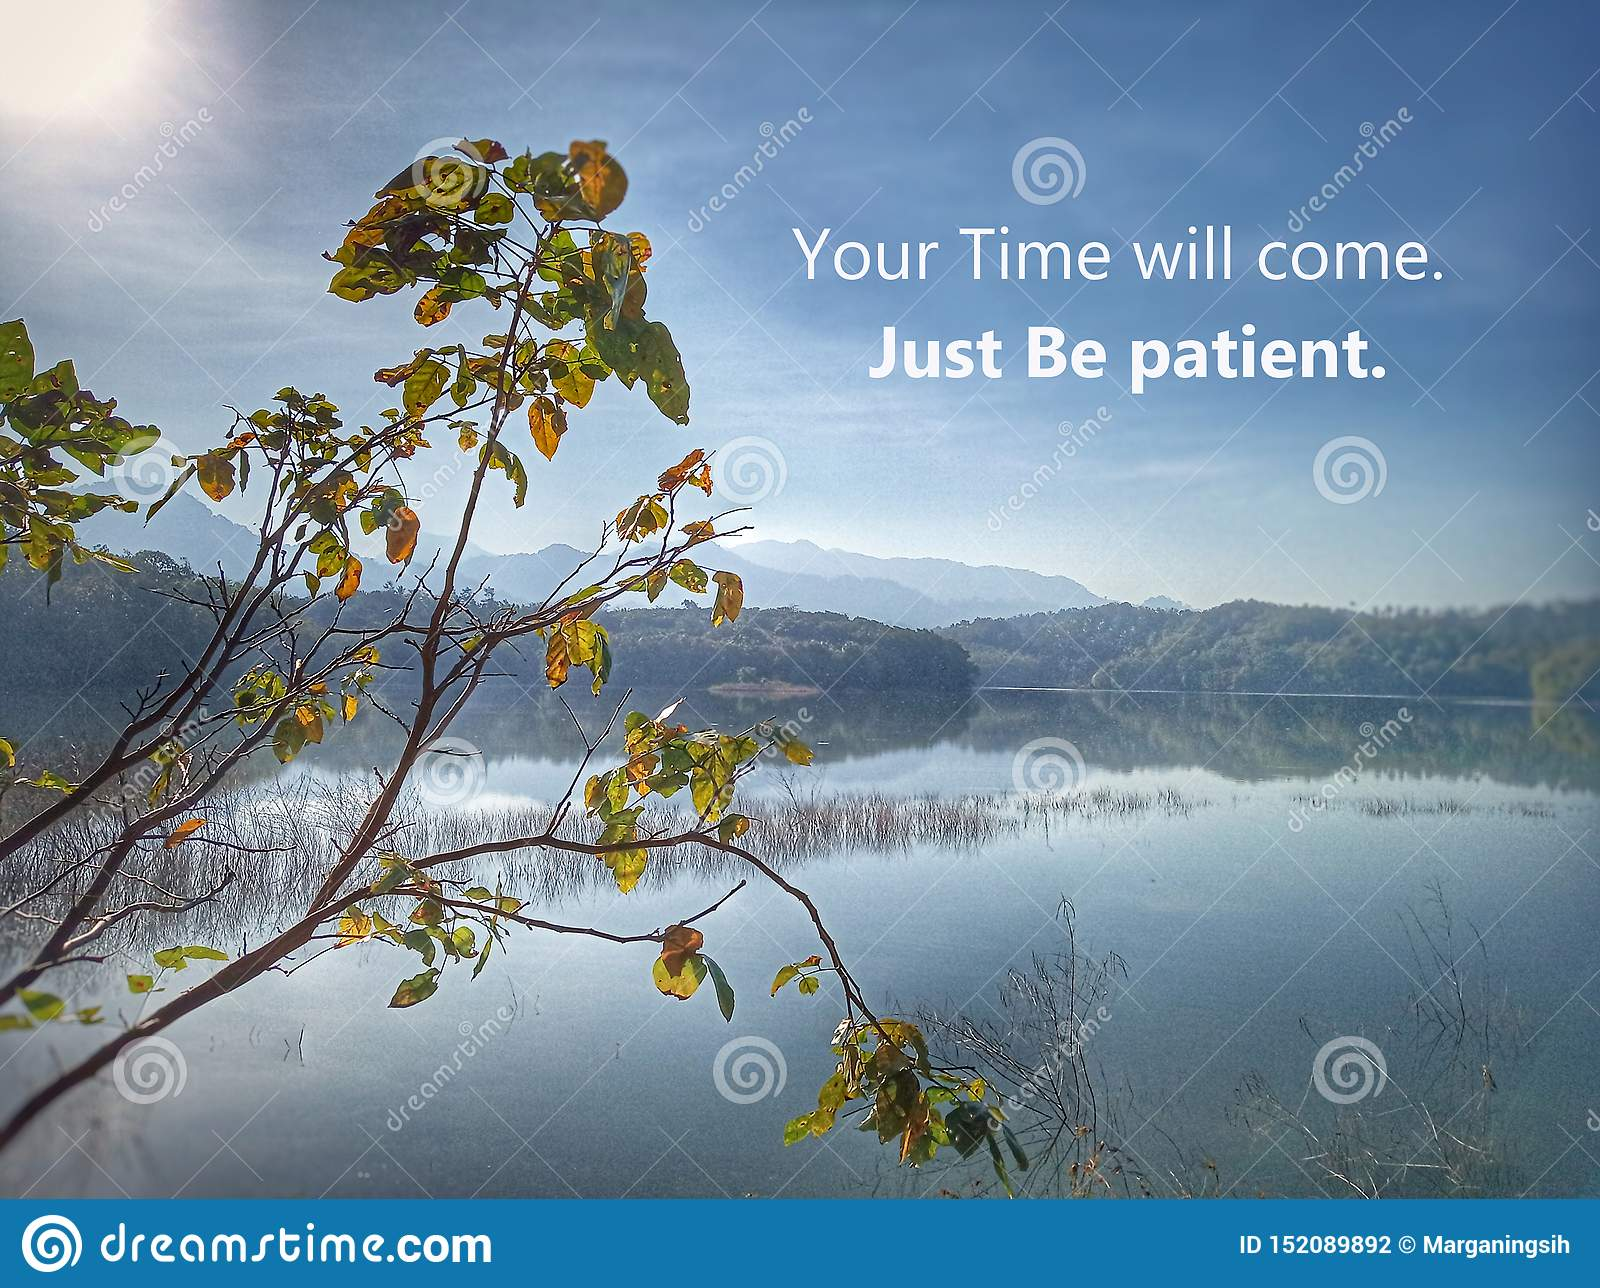 inspirational motivational quote you time will come just be